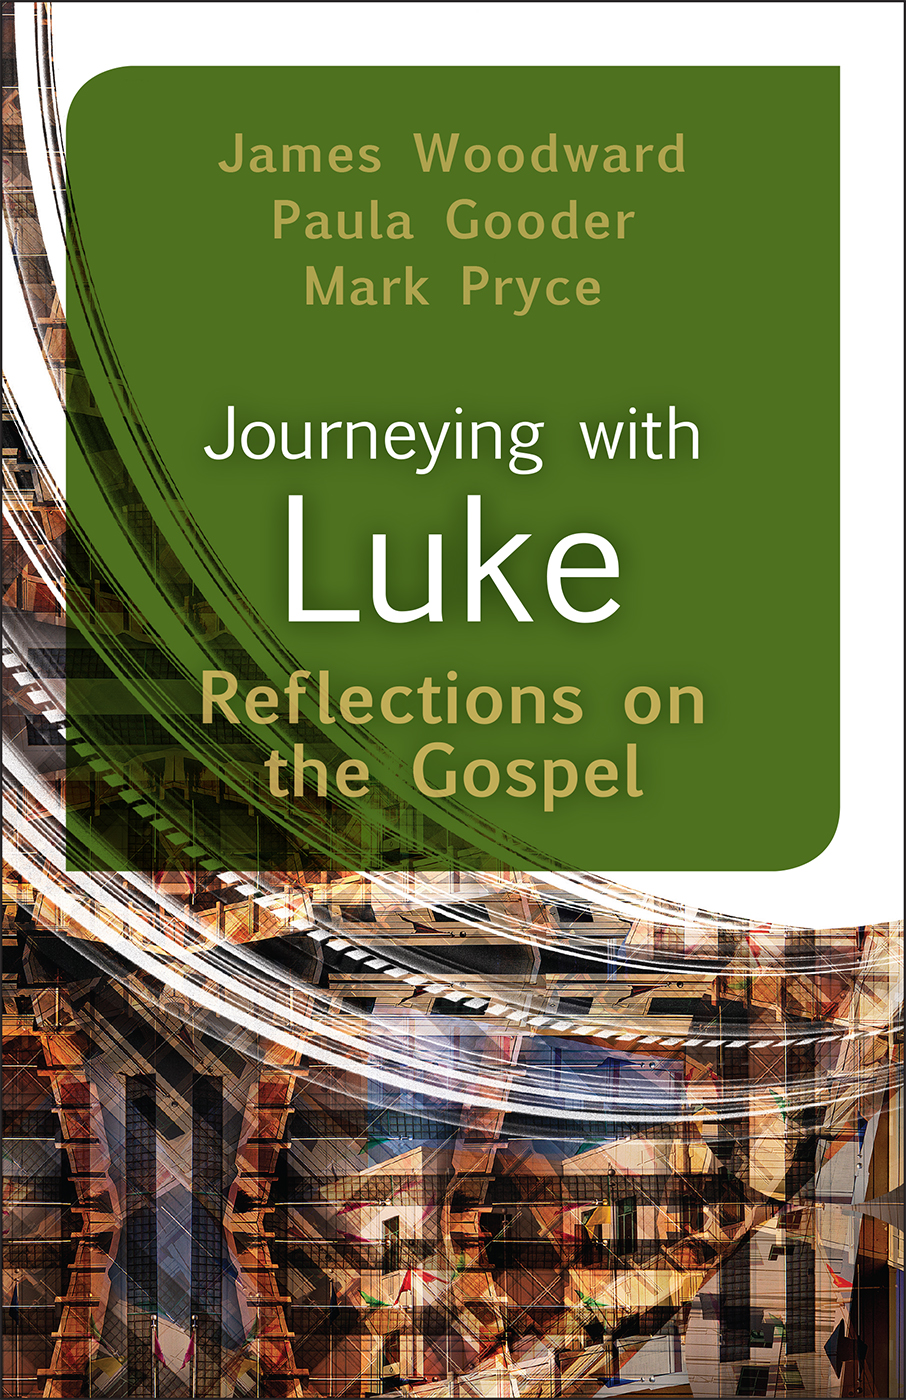 Journeying with Luke